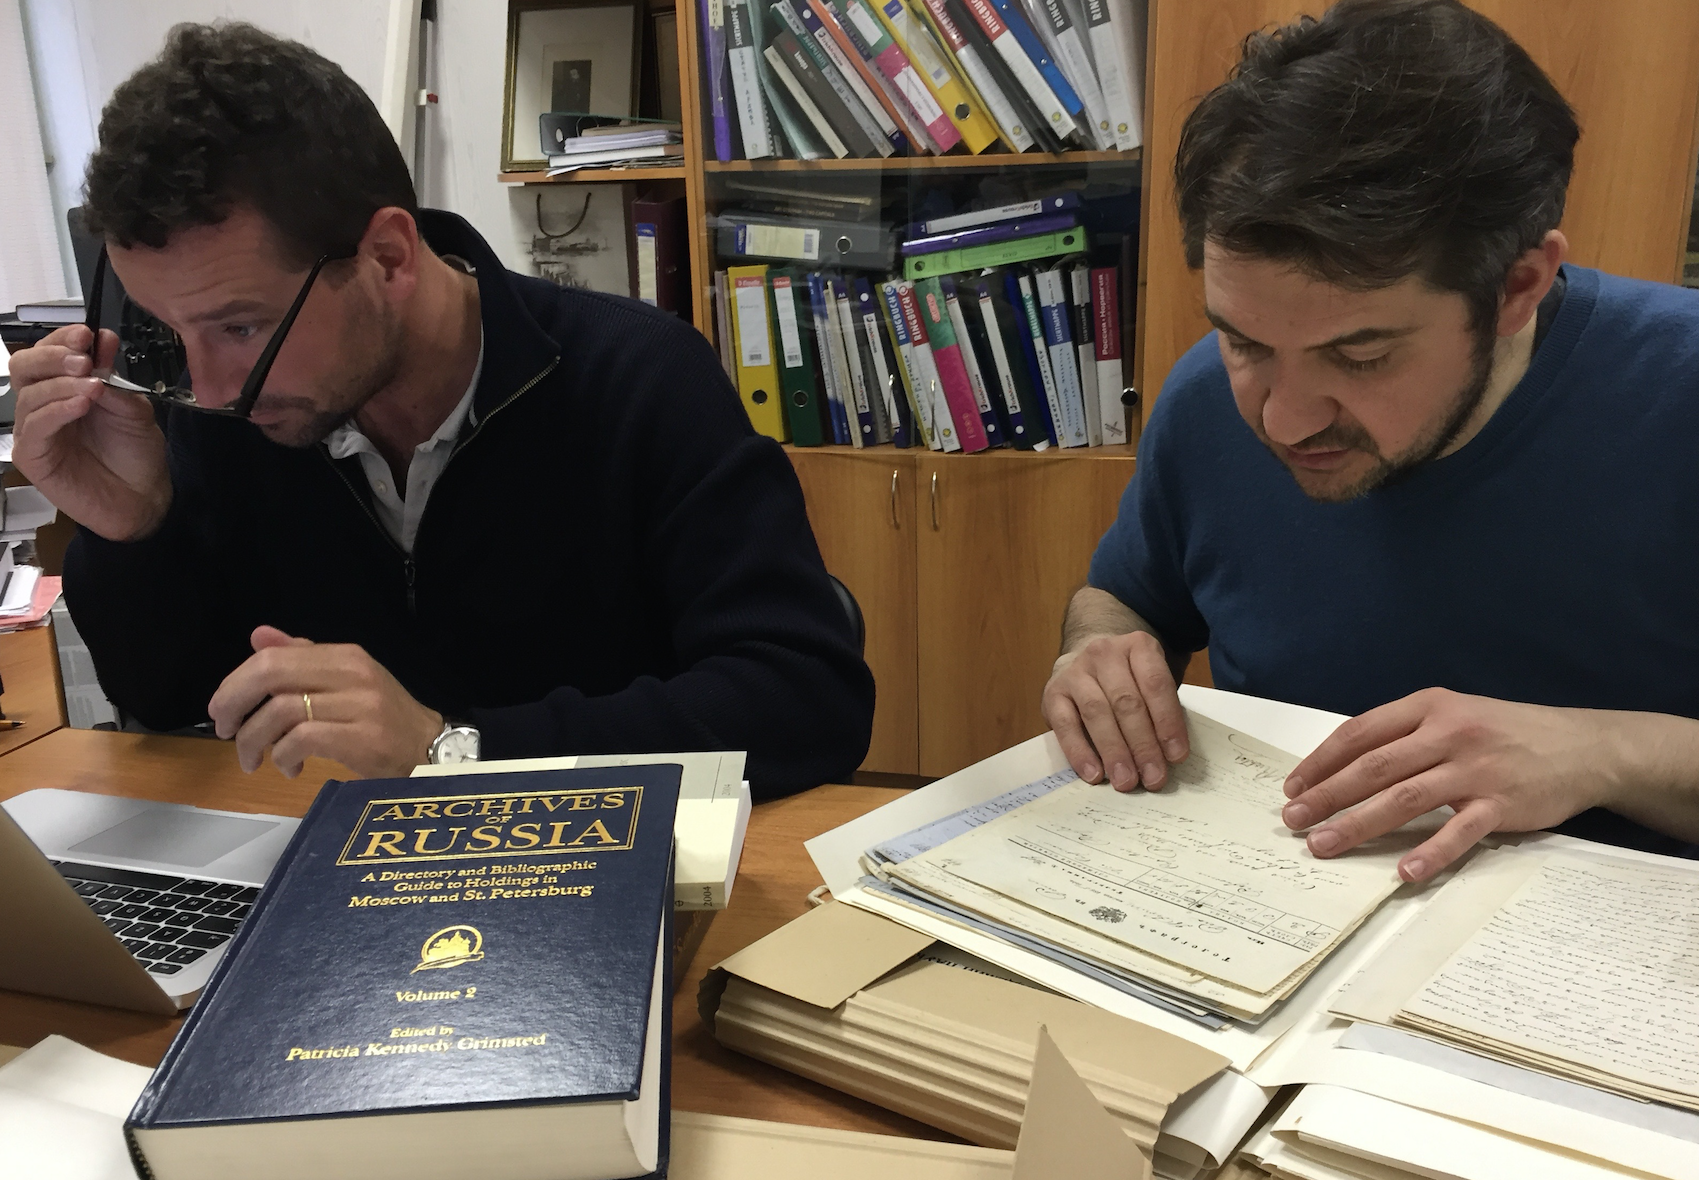 Image 12. Vincent Lemire and Yann Potin at work in the Archives of the Saint Petersburg Academy of Sciences